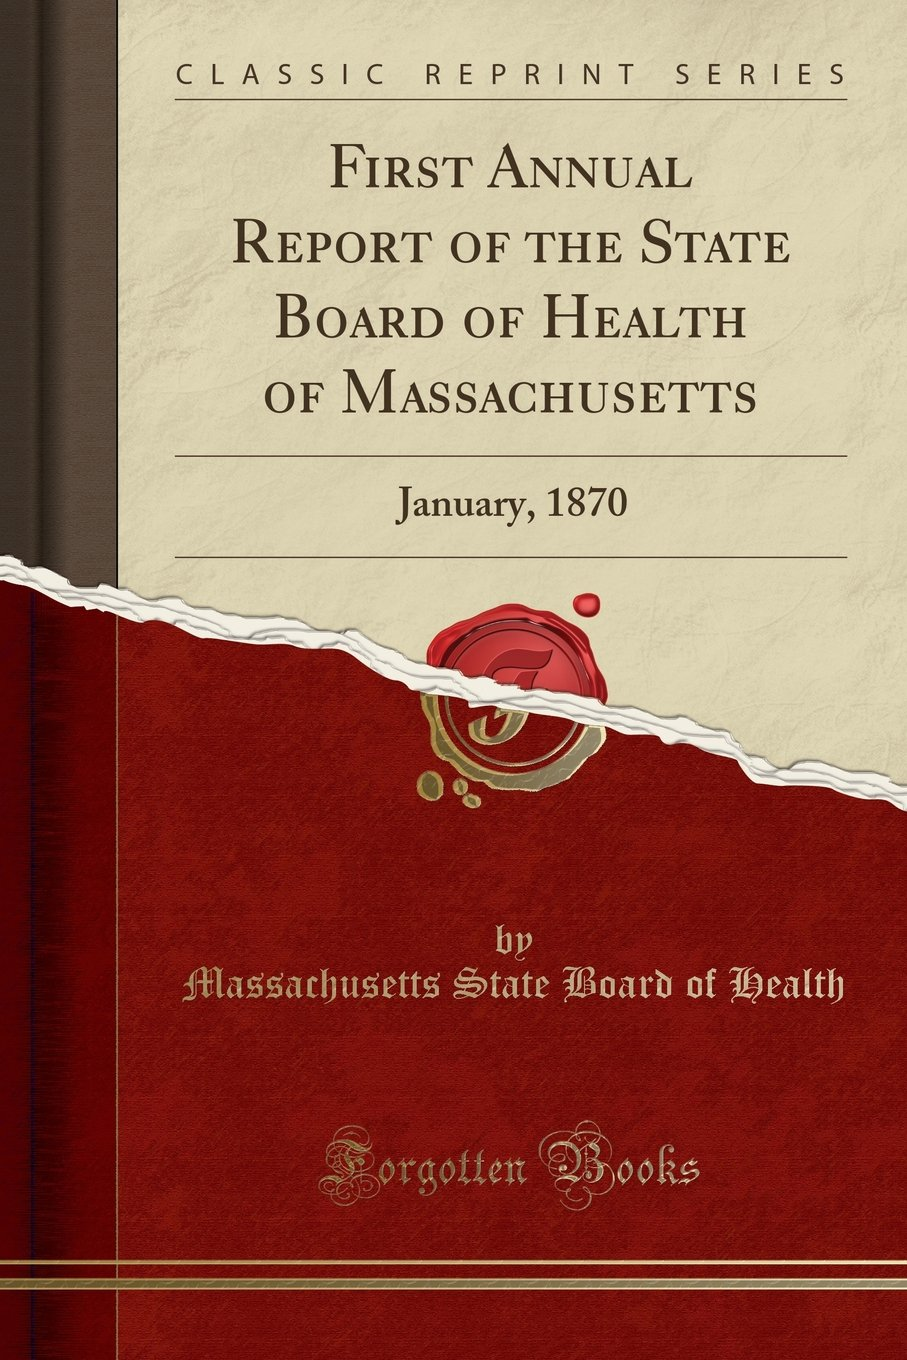 Download First Annual Report of the State Board of Health of Massachusetts: January, 1870 (Classic Reprint) ePub fb2 ebook